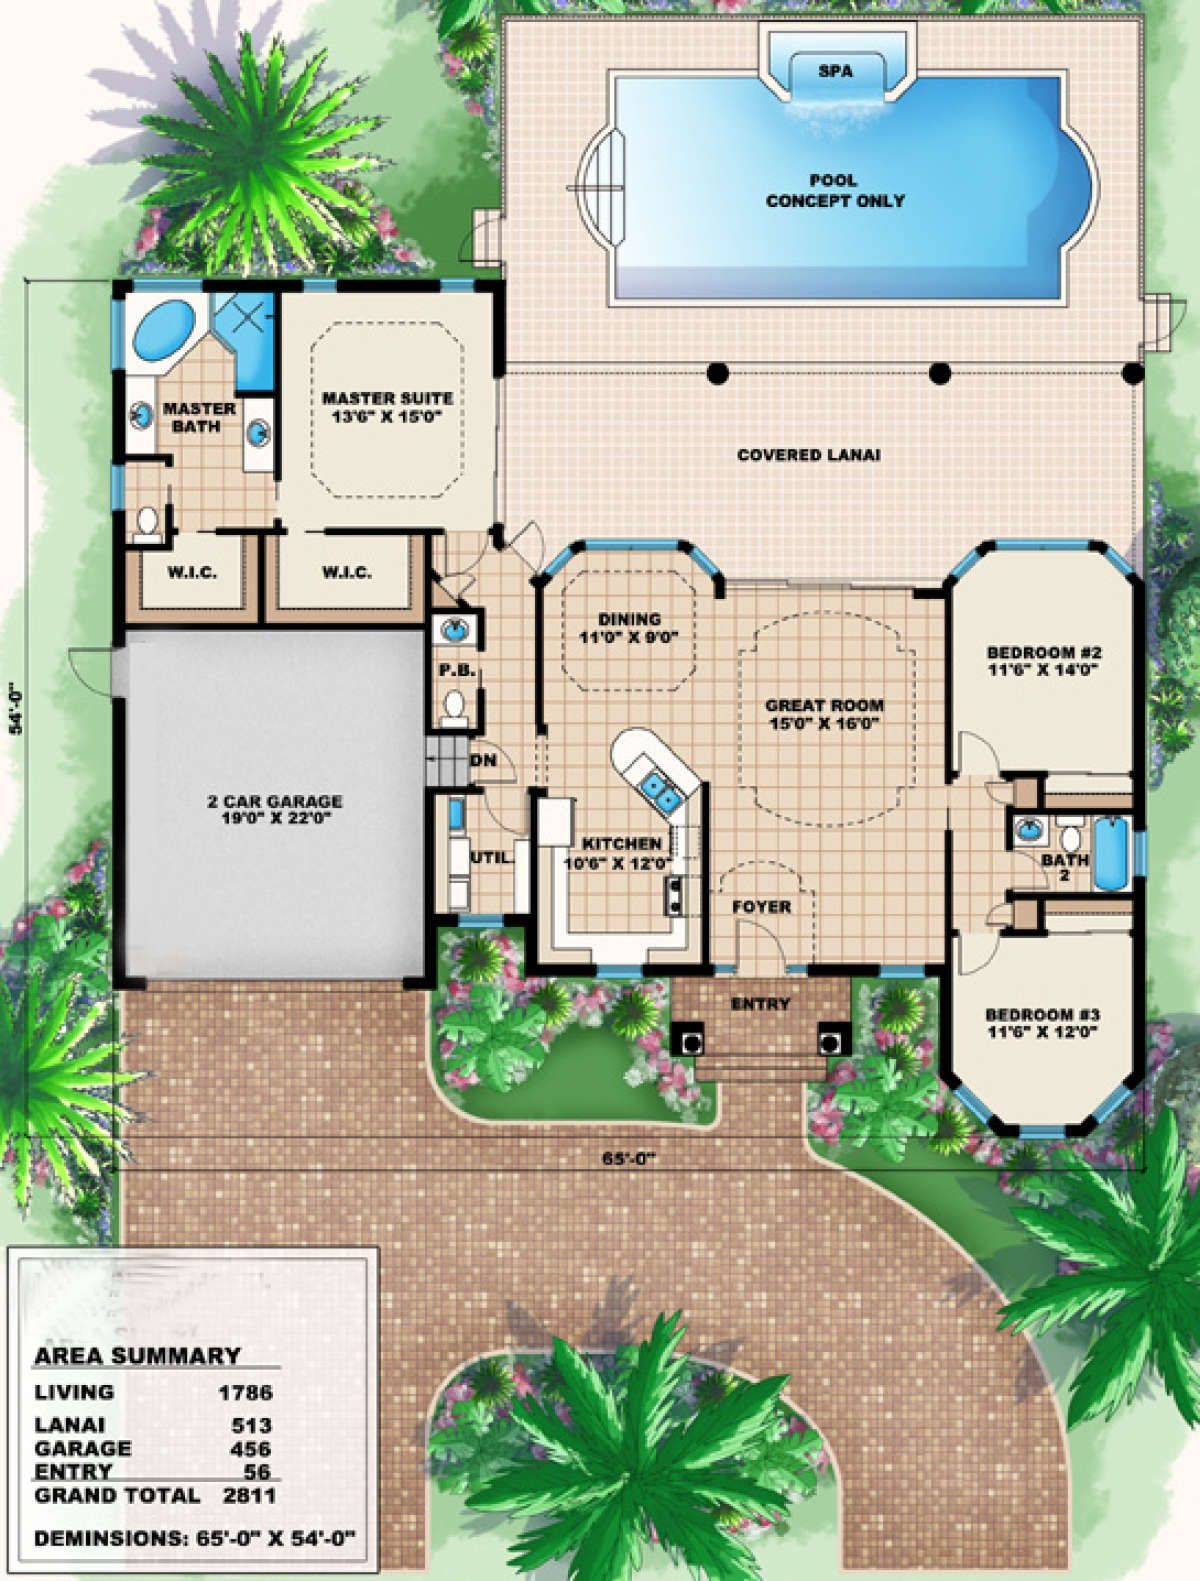 House Plan 1018 00006 Mediterranean Plan 1 786 Square Feet 3 Bedrooms 2 5 Bathrooms Mediterranean Style House Plans Sims 4 House Plans Sims 4 House Building